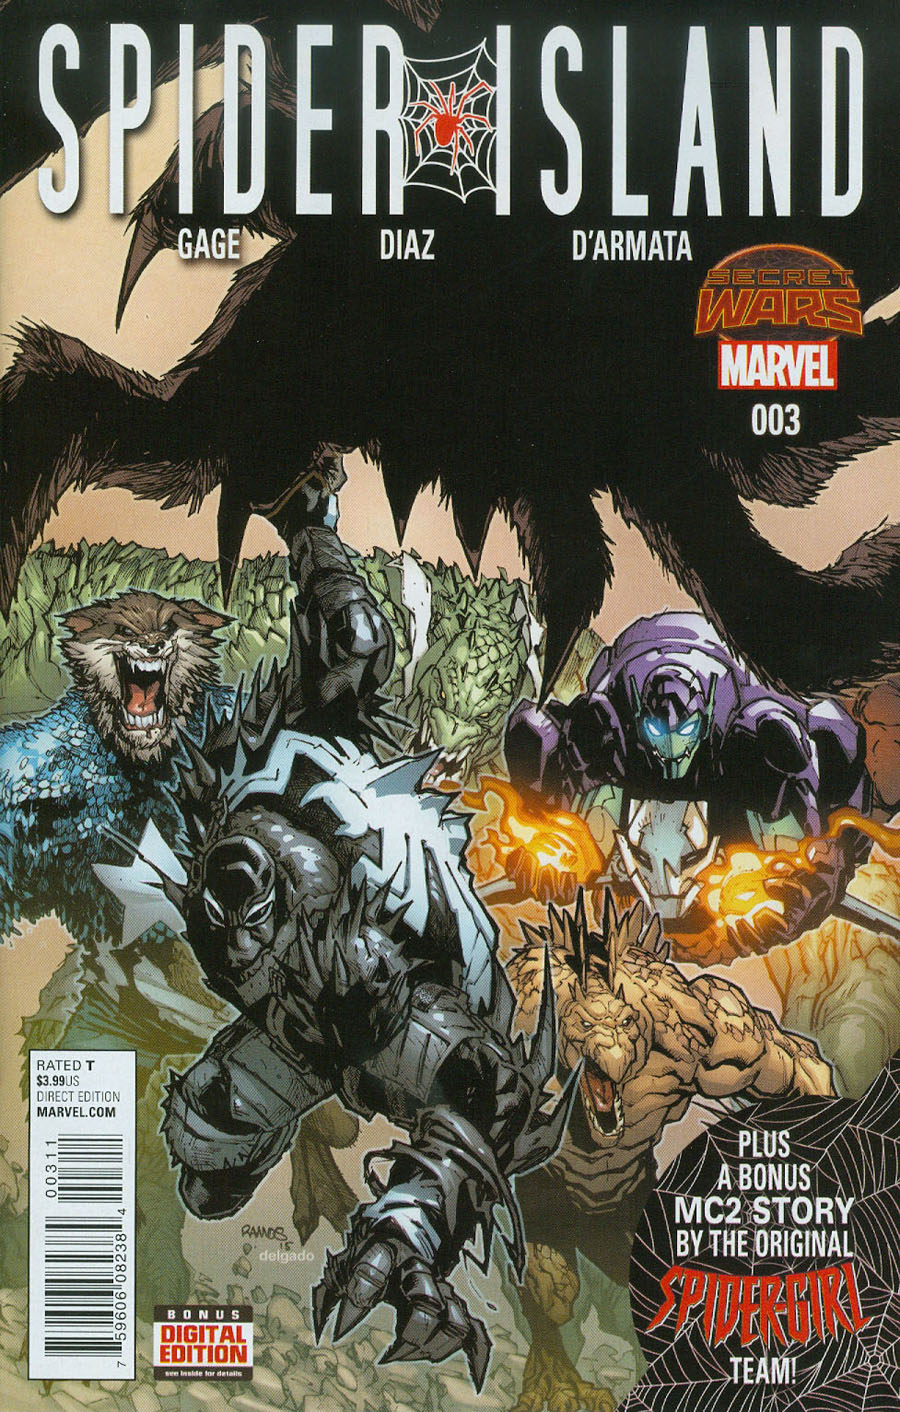 Spider-Island #3 Cover A Regular Humberto Ramos Cover (Secret Wars Warzones Tie-In)